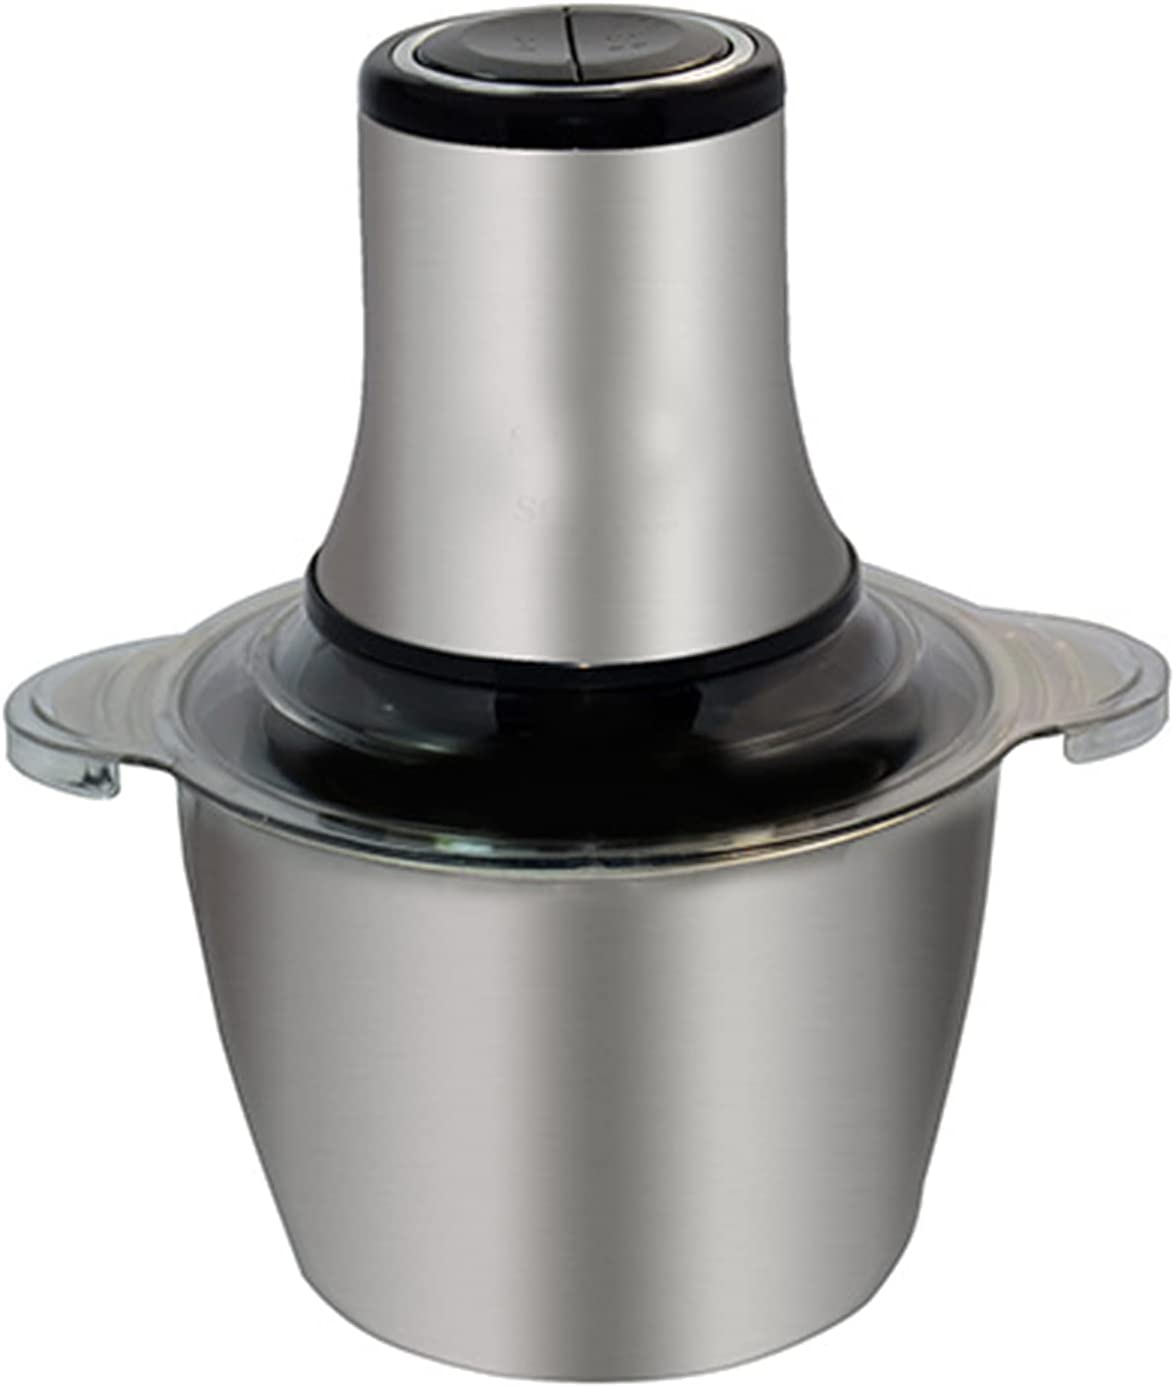 Home Food Processor, Countertop Vegetable Chopper Mincer for Fruits Nuts Spices, 2 Sharp Blades, 800W Max Motor, Blenders for Kitchen